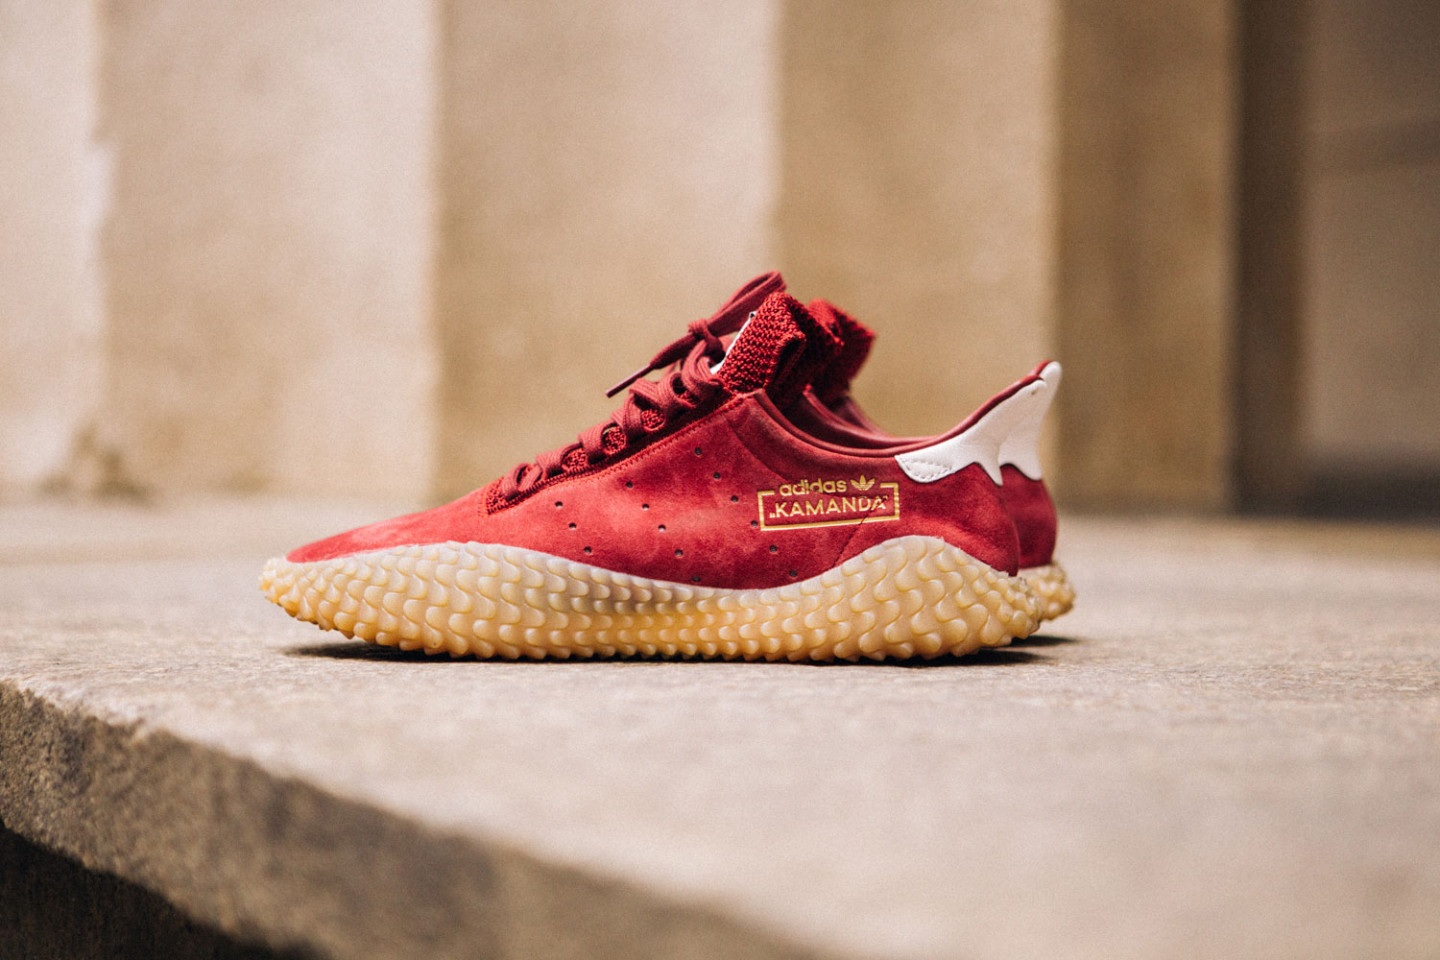 new style bee86 60714 A closer look to adidas x C.P. Company collaboration